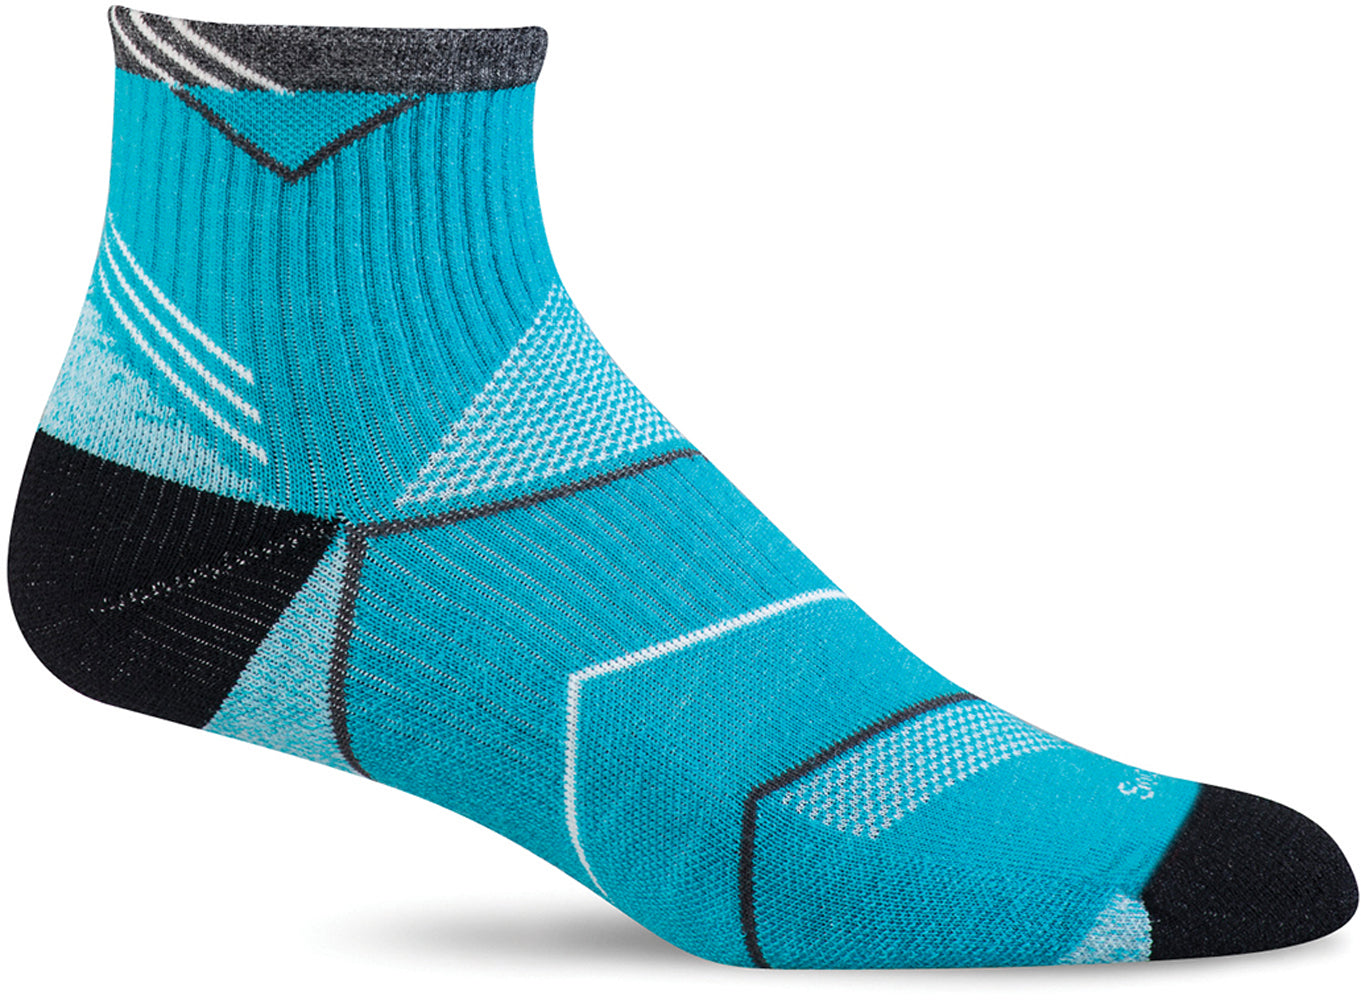 Sockwell Women's Incline Quarter Sock in Turquoise color from the side